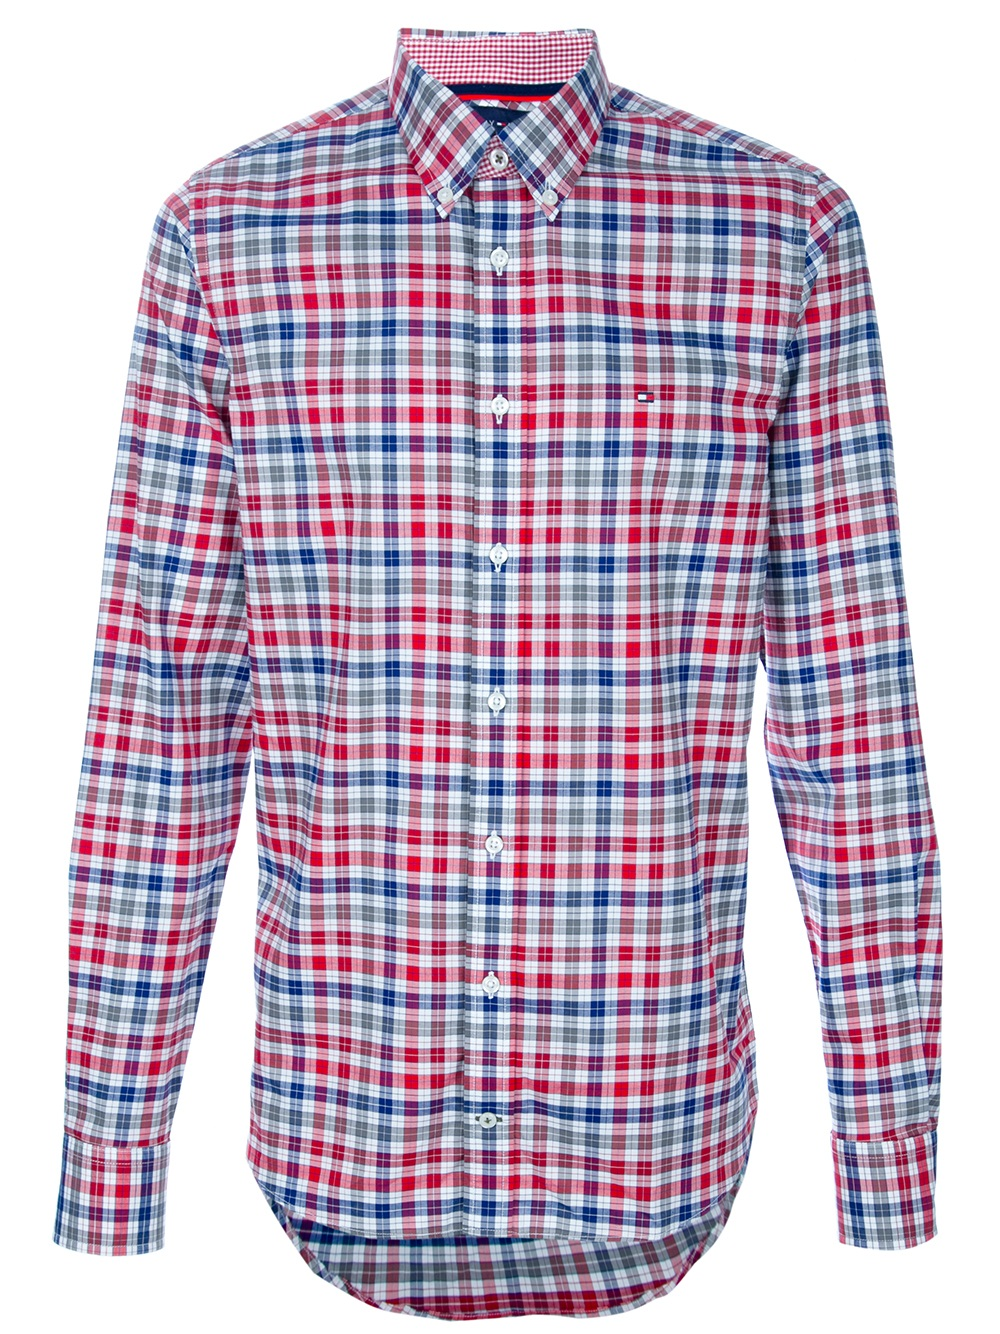 Lyst Tommy Hilfiger Checked Shirt In Blue For Men